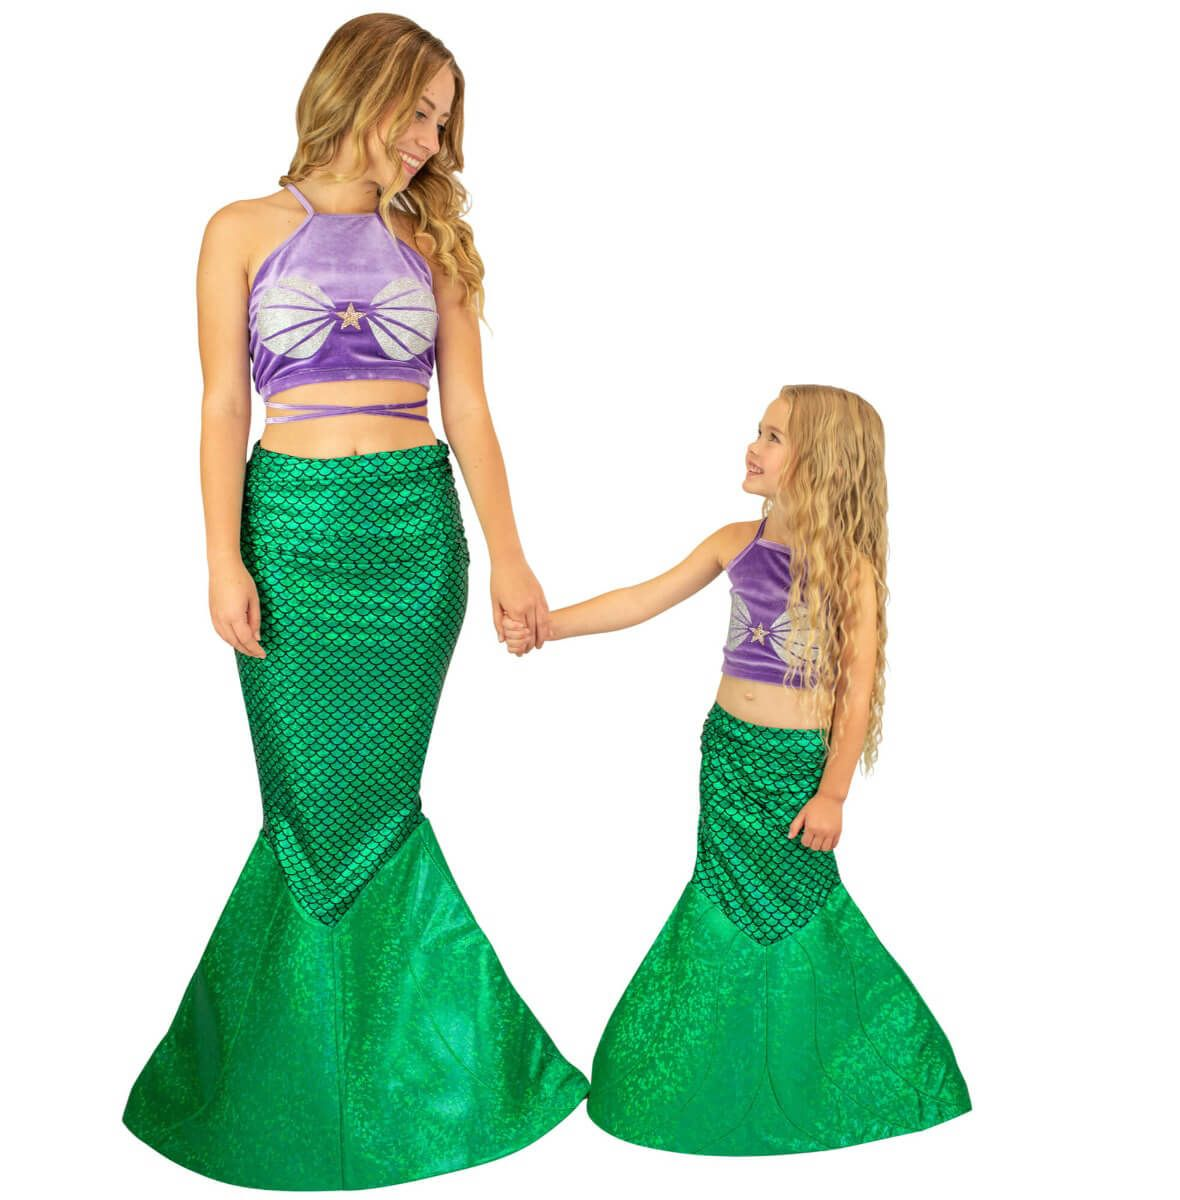 Mermaid Halloween Costume For Kids And Adults Fin Fun